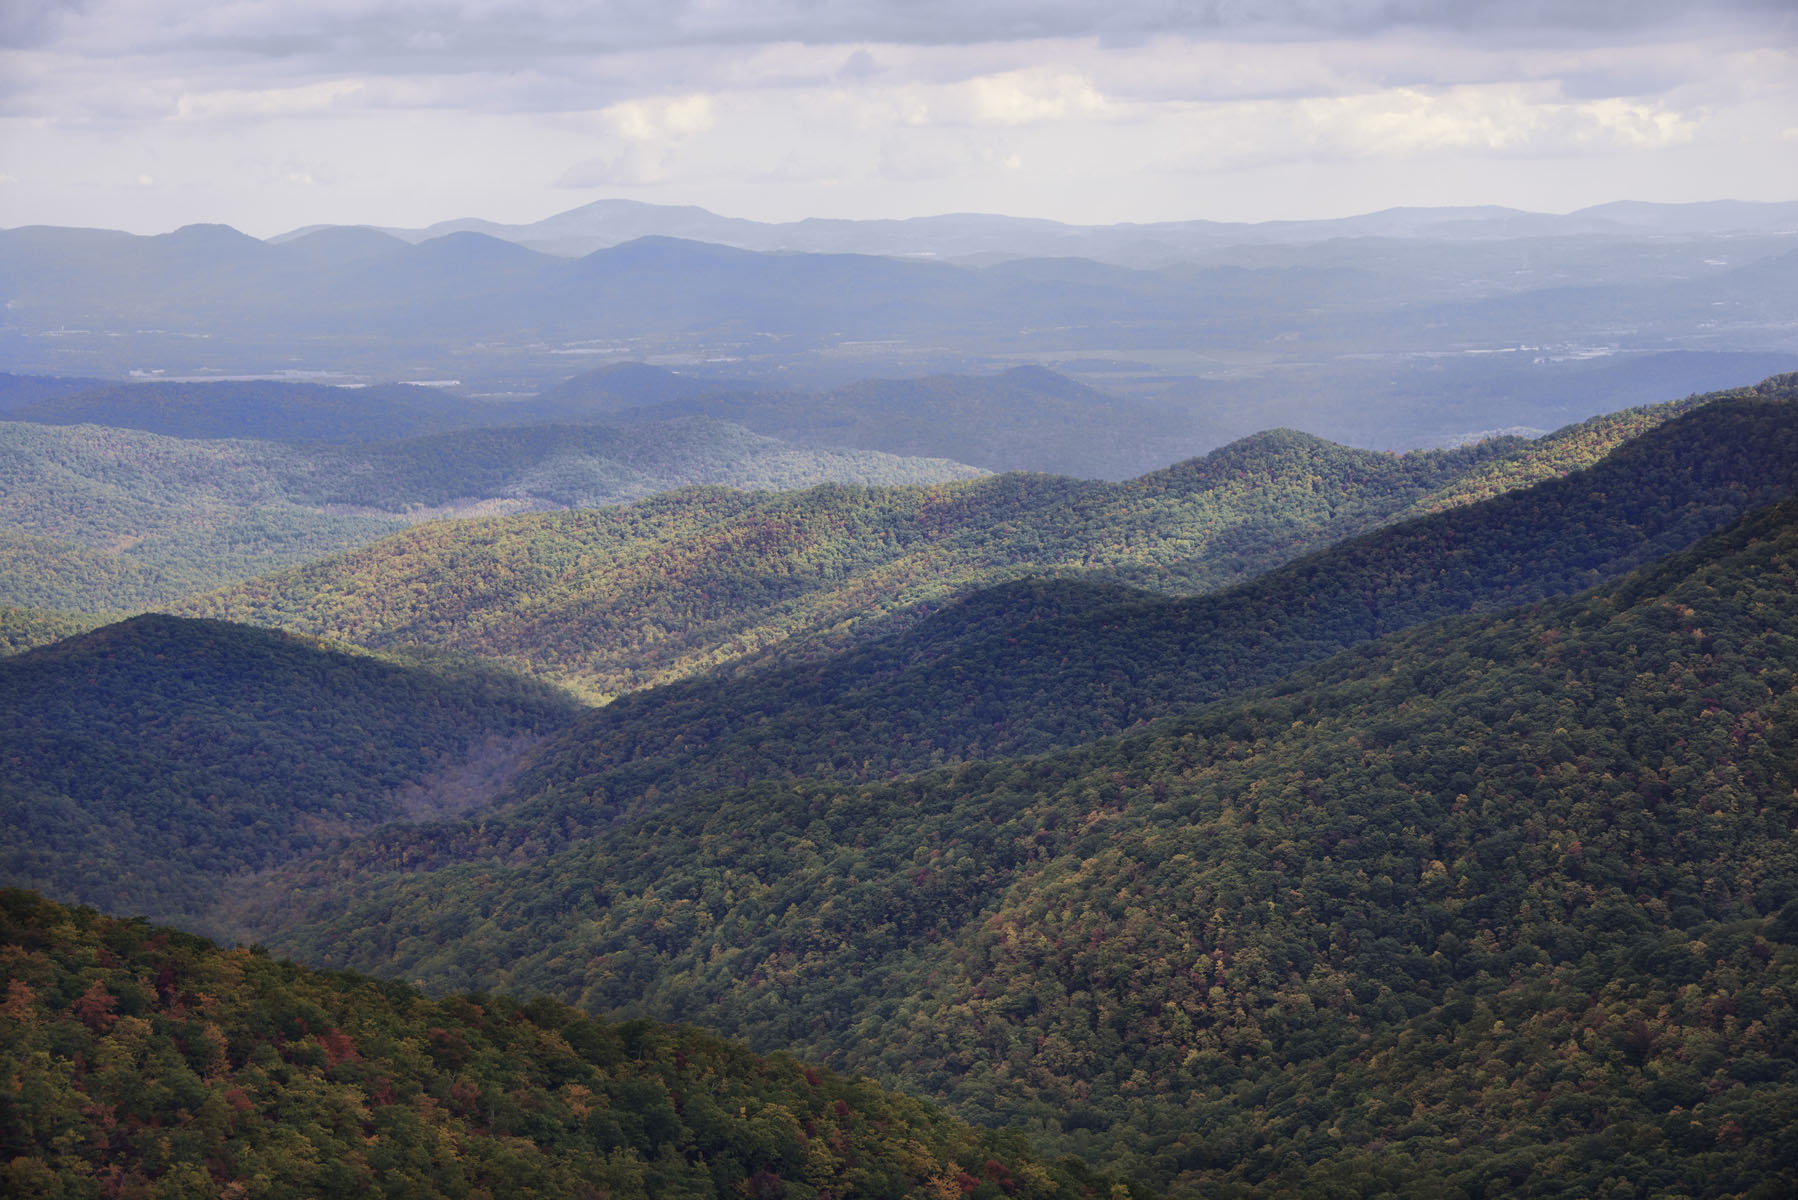 Overview of Fall Foliage in Smoky Mountains on Blue Ridge Parkway